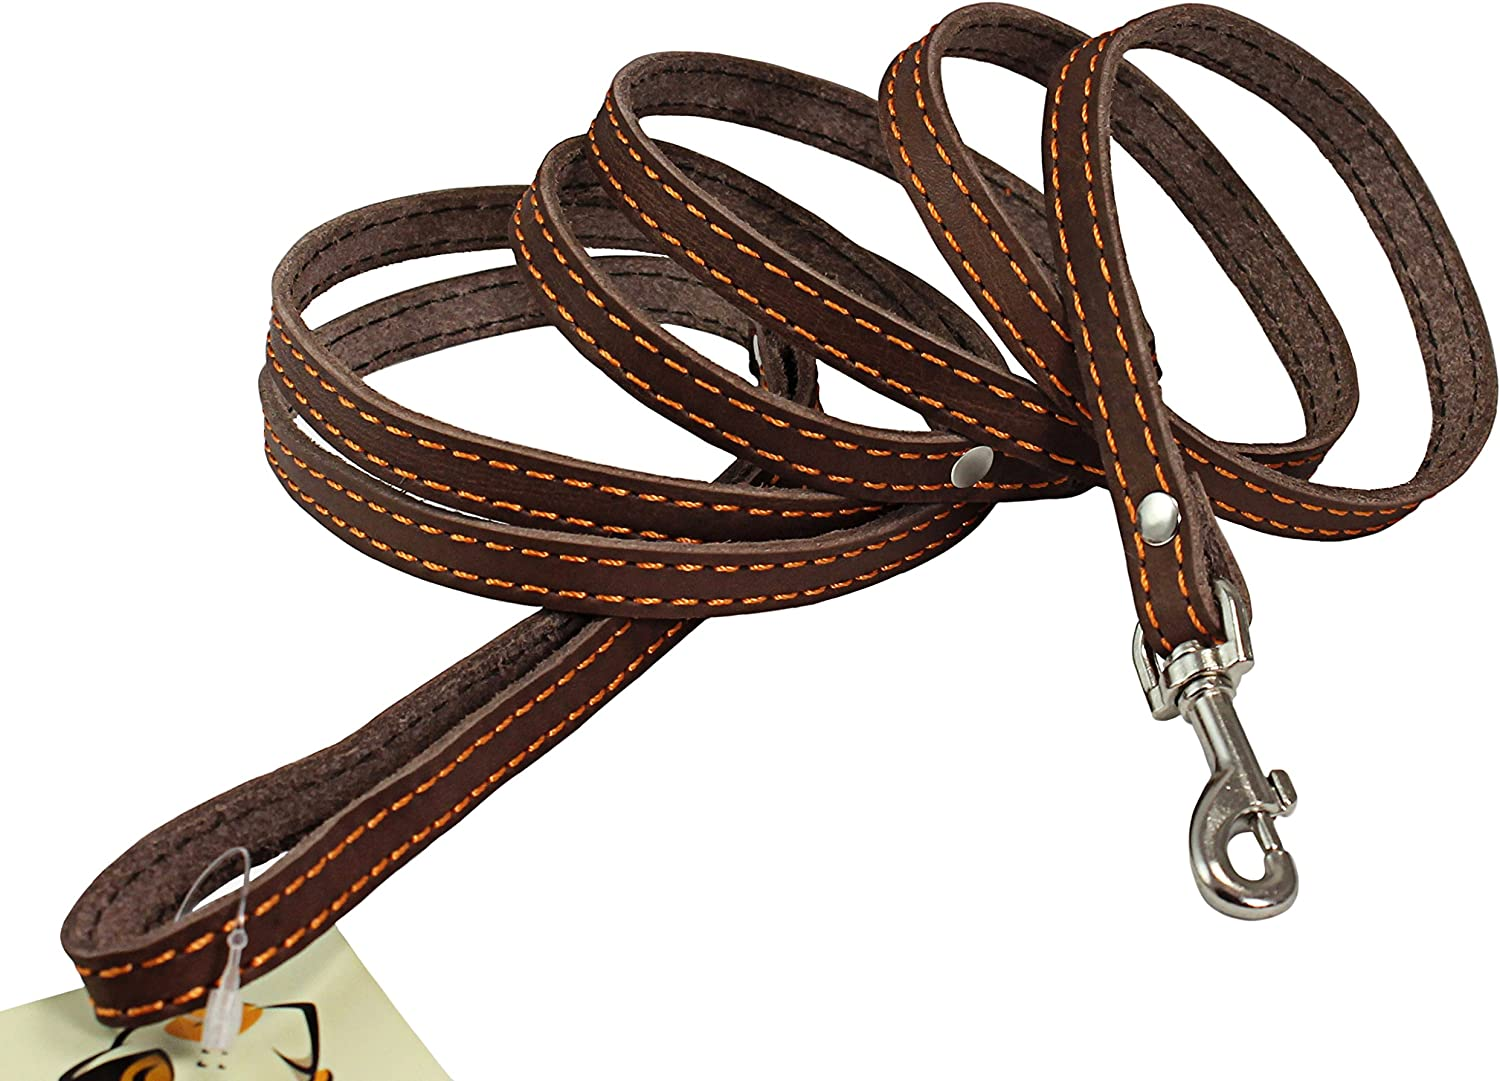 6' Long Genuine Leather Braided Dog Leash Brown 3 8  Wide for Small Dogs and Puppies